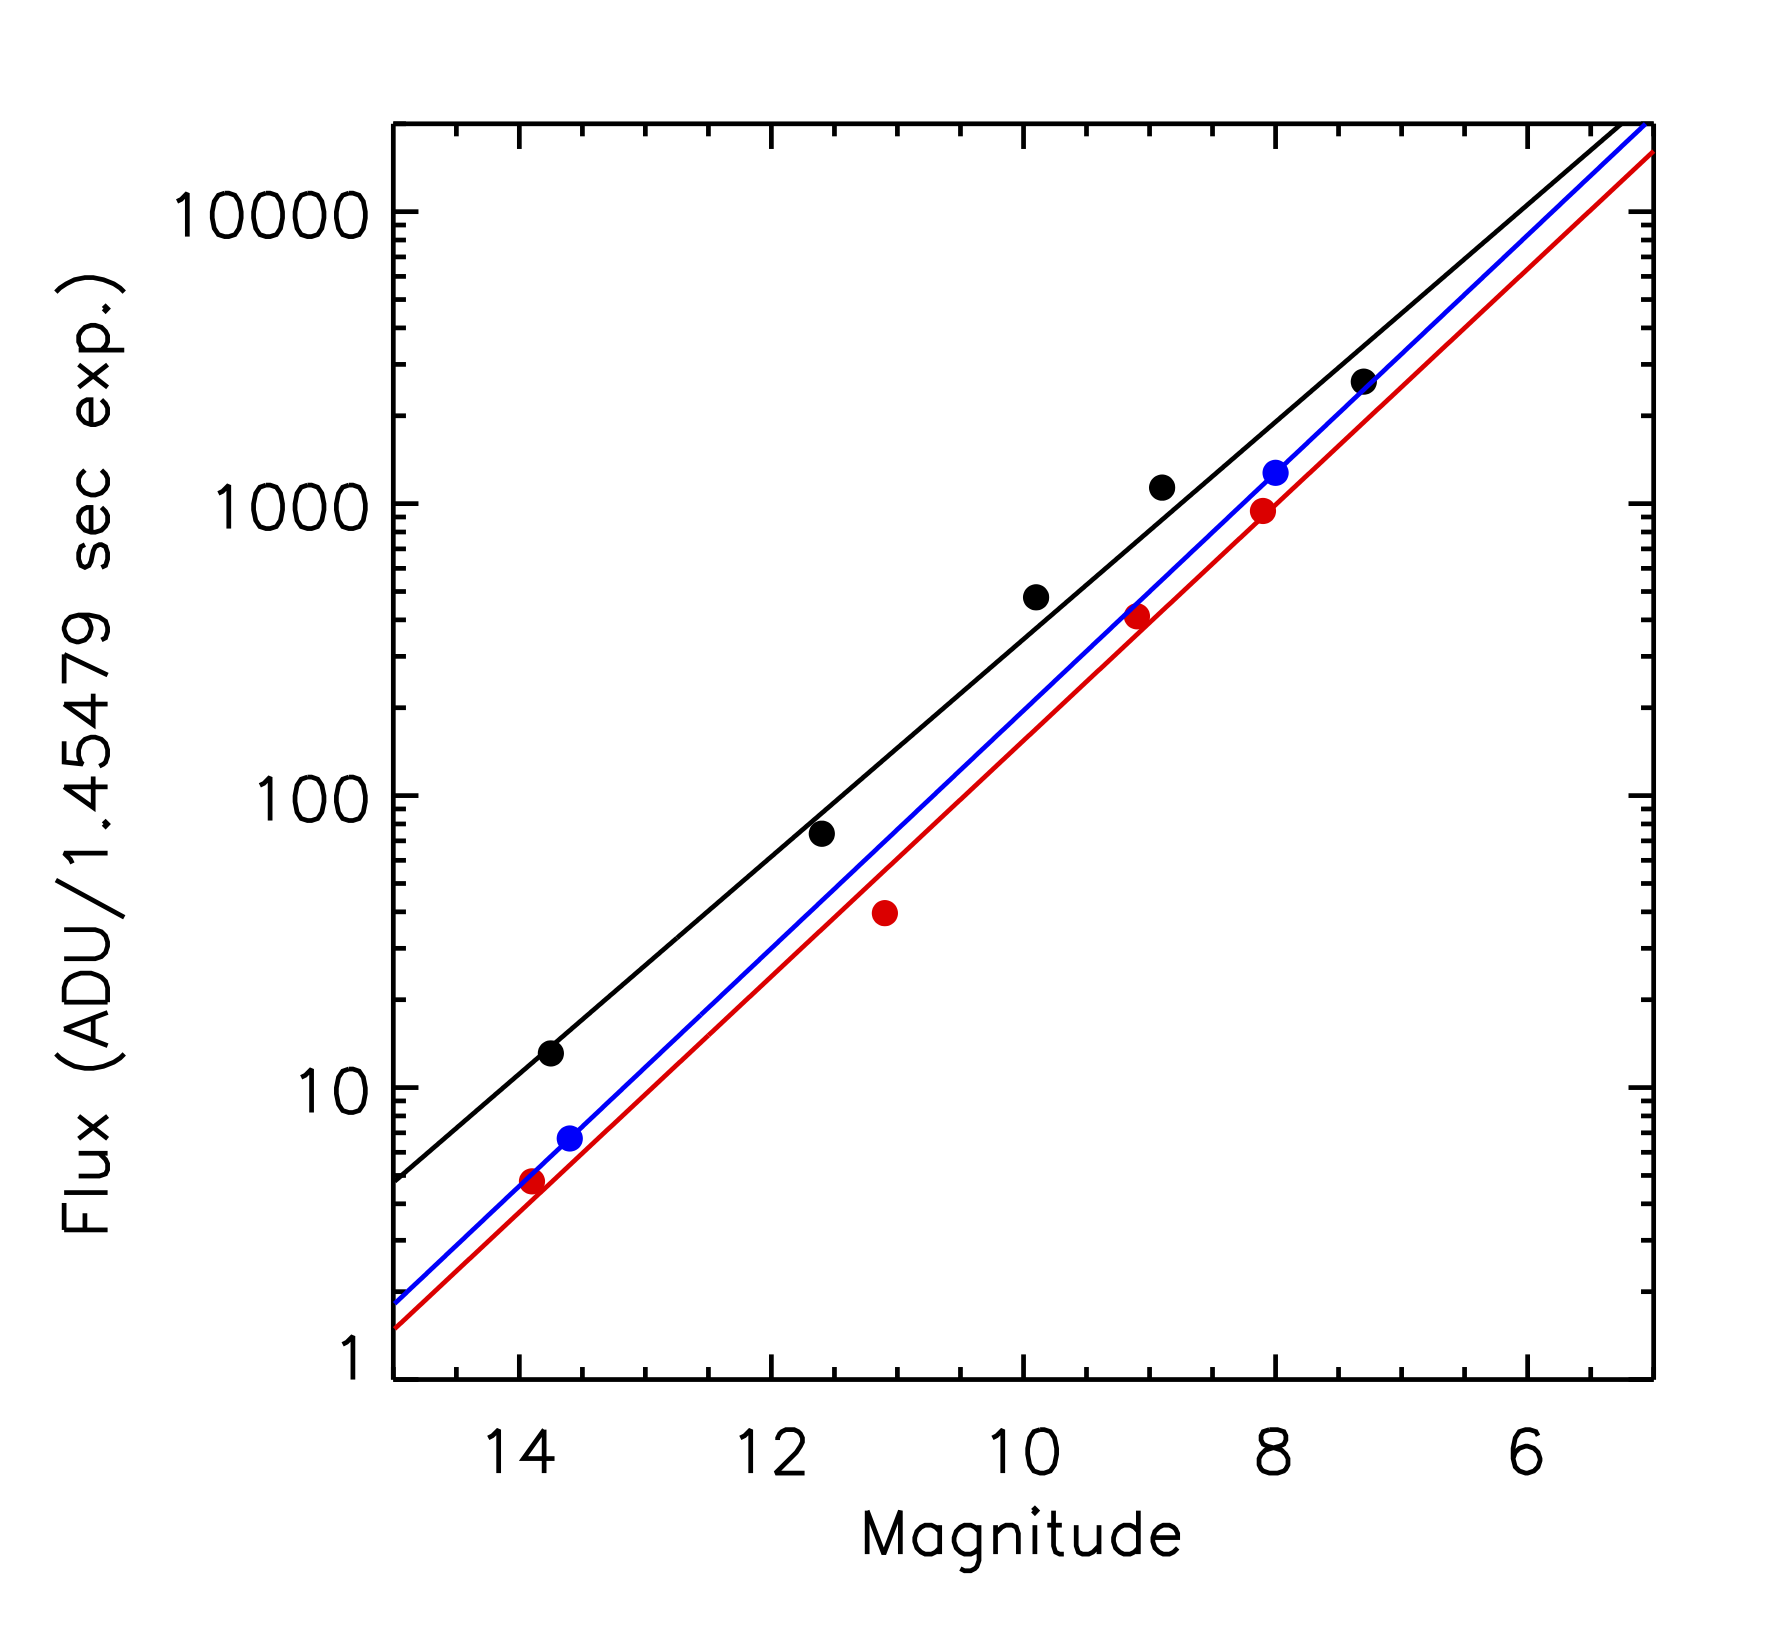 Flux measured for stars in the coronagraphic mode at a range of magnitudes observed with the J (blue), H (black) and K1 (red) filters, normalised to the minimum exposure time of 1.45479 seconds.